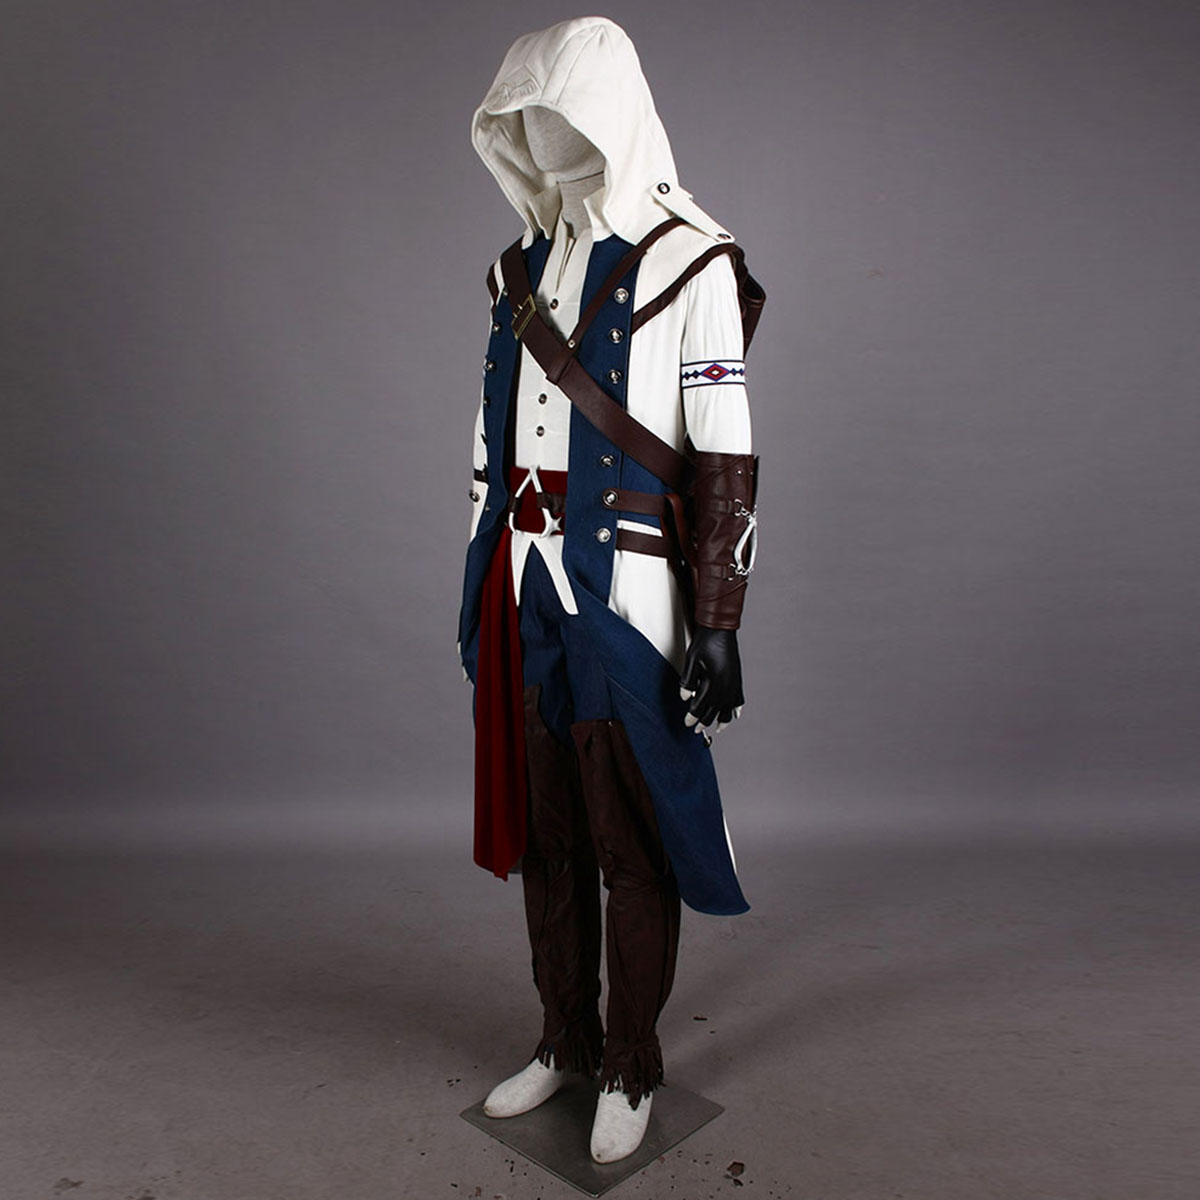 Assassin's Creed III Assassin 8 Cosplay Costumes New Zealand Online Store